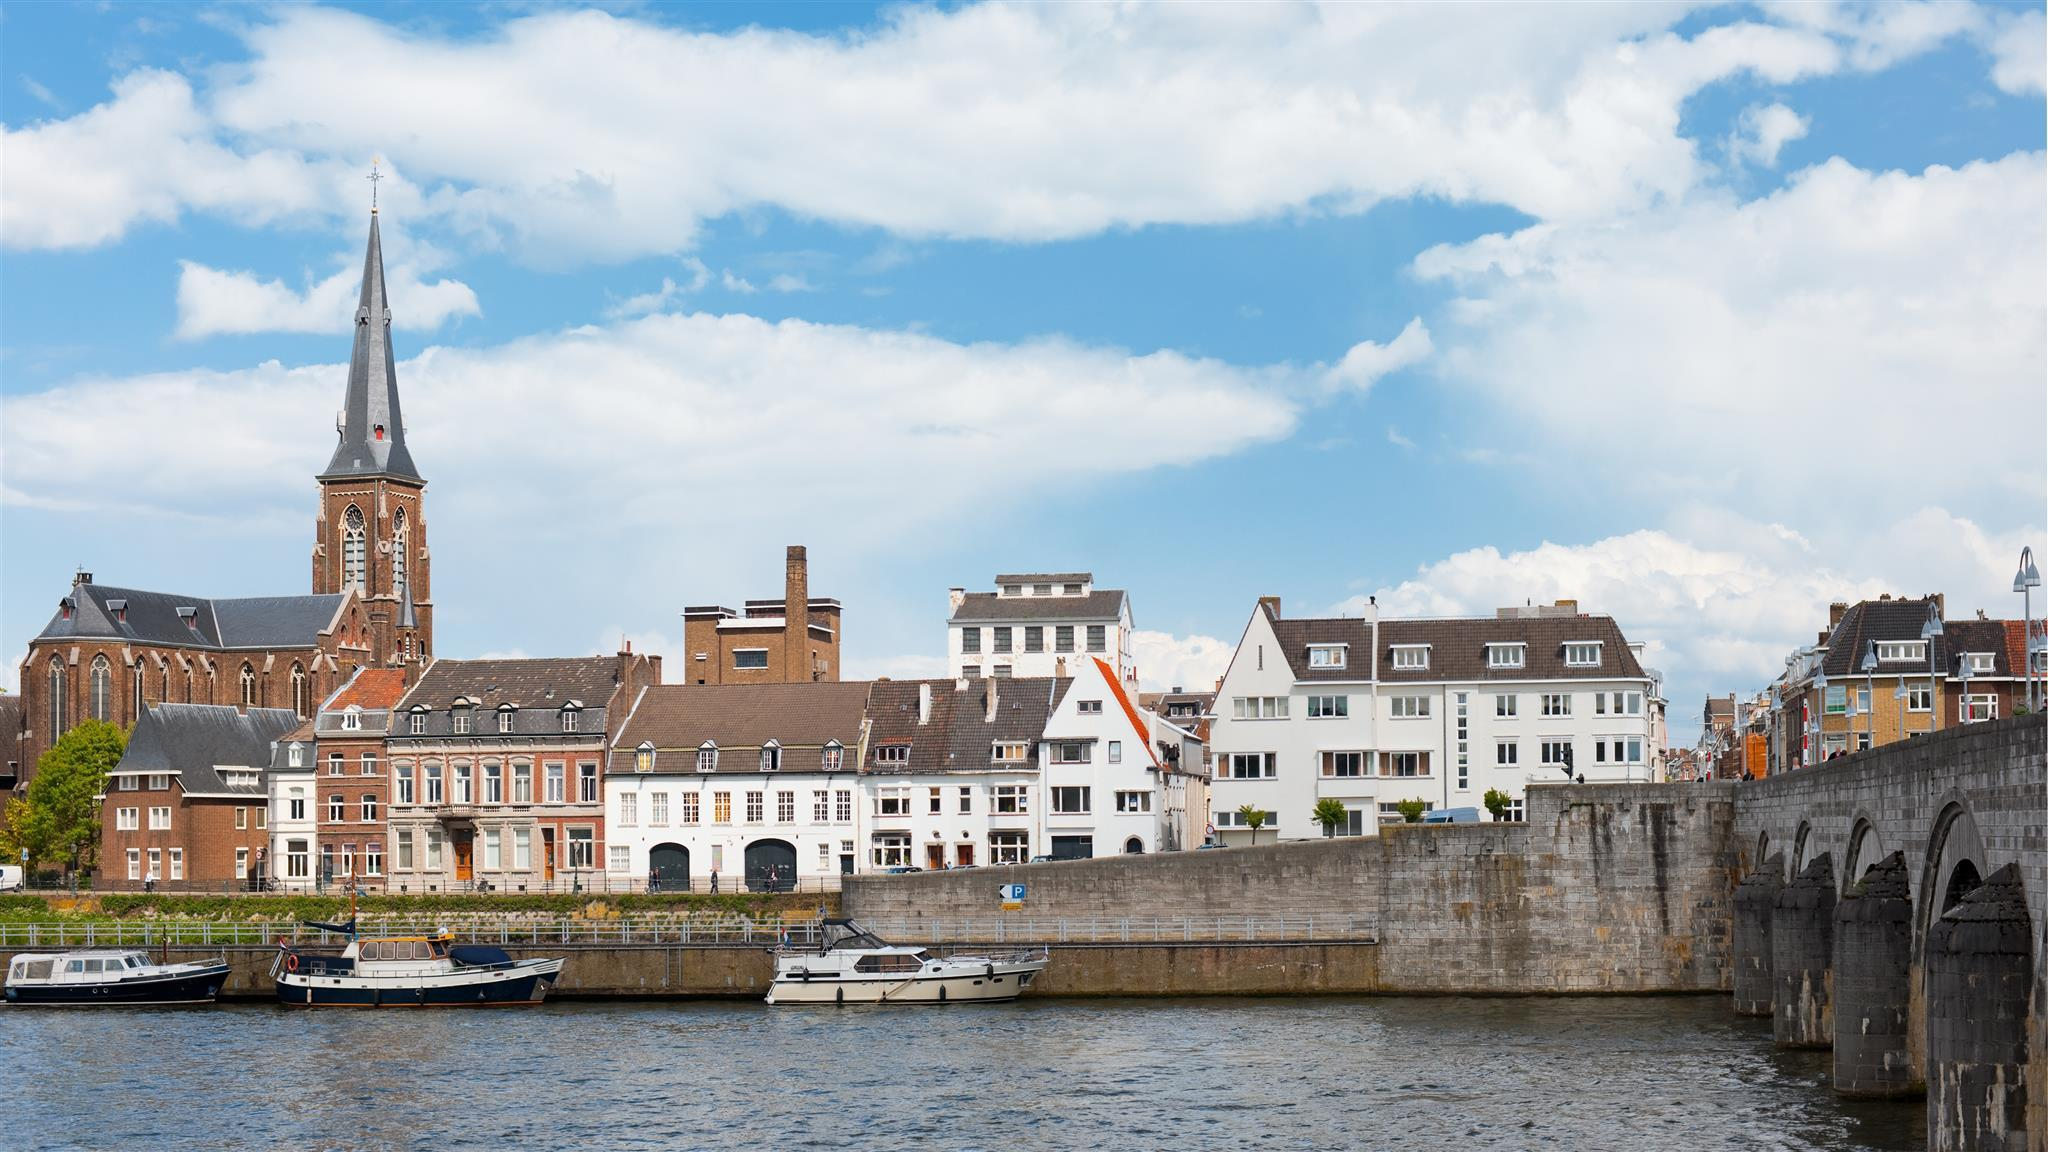 10 Best Maastricht Hotels Hd Pictures Reviews Of Hotels